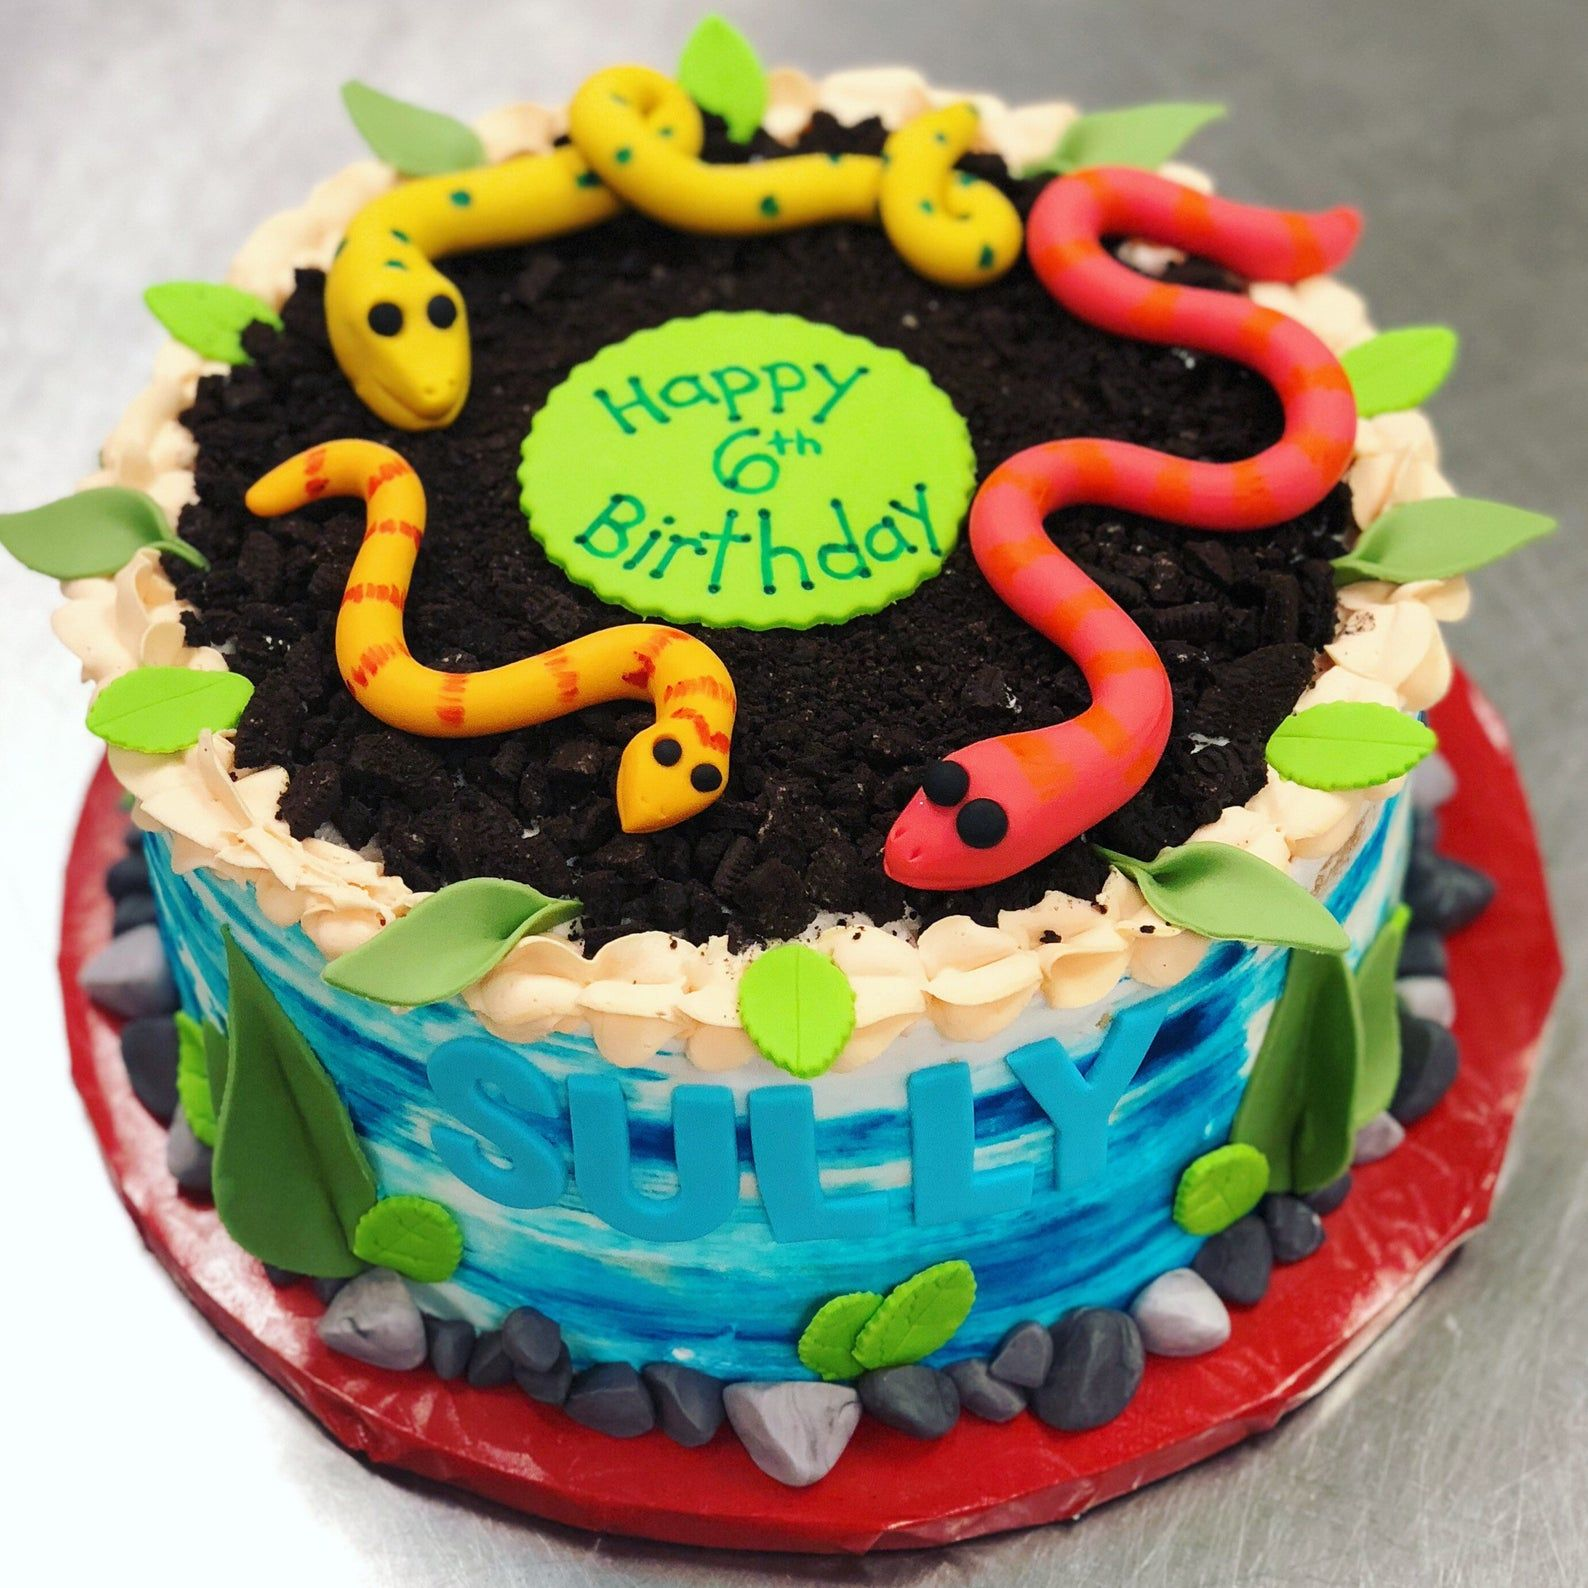 Astounding Snake Cake Toppers Snake Cakes Cake Cake Toppers Funny Birthday Cards Online Fluifree Goldxyz